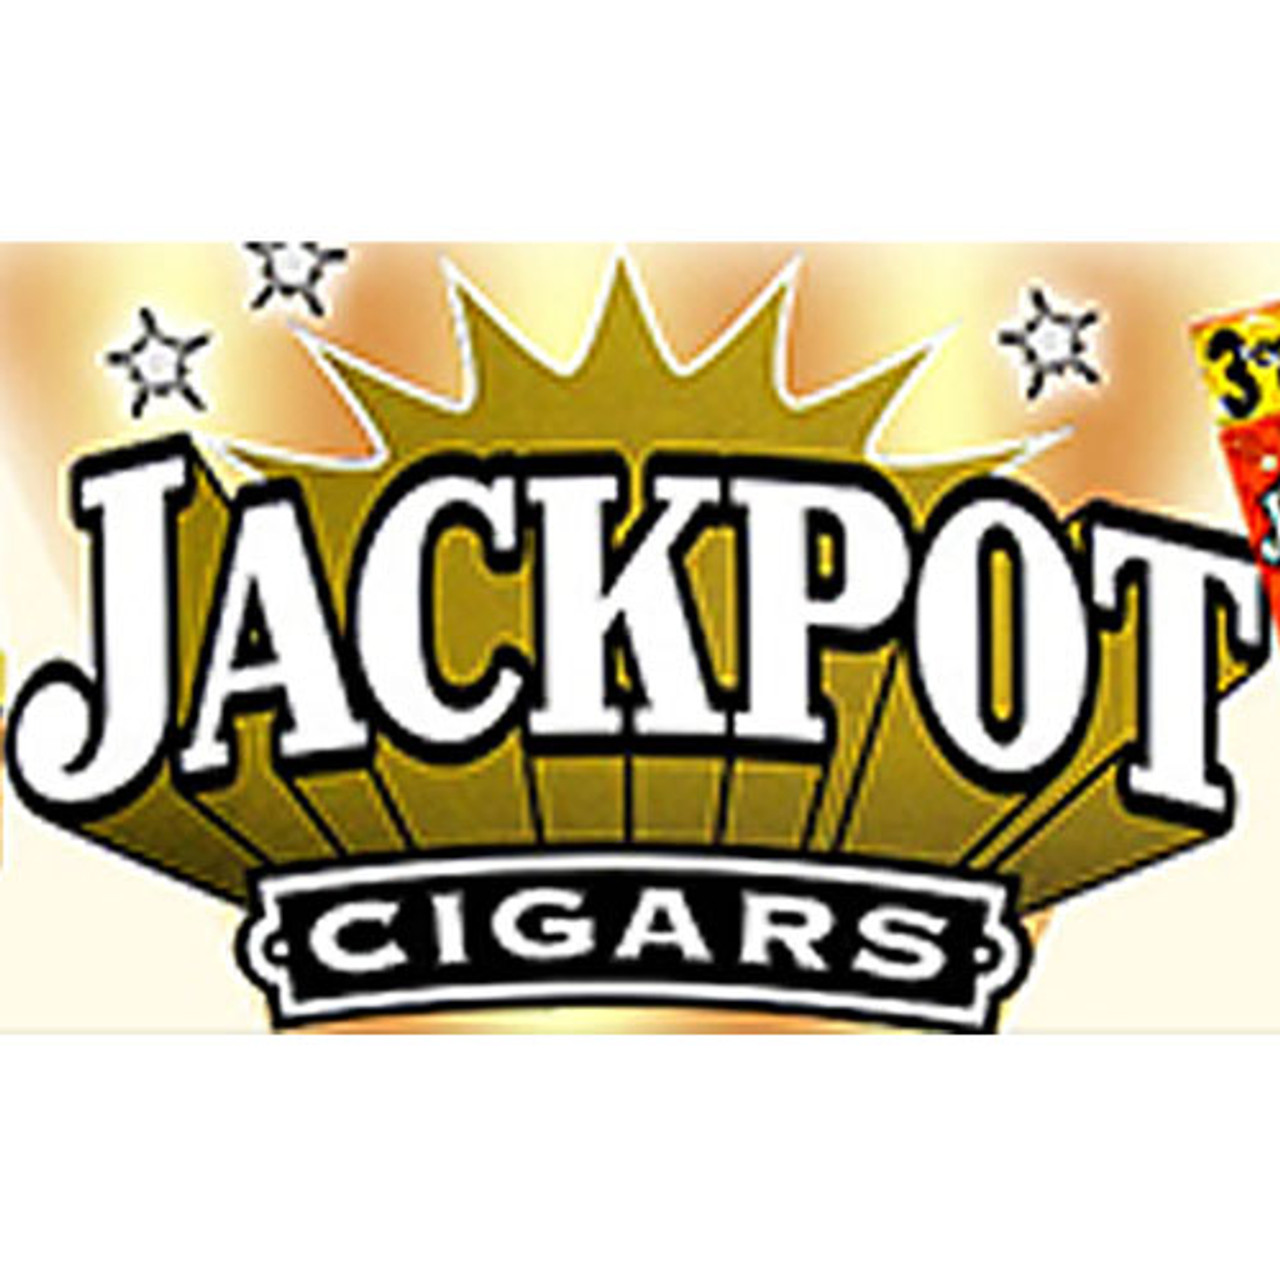 Jackpot Cigarillo Watermelon Cigars - 4.69 x 28 (15 Packs of 3 (45 Total))